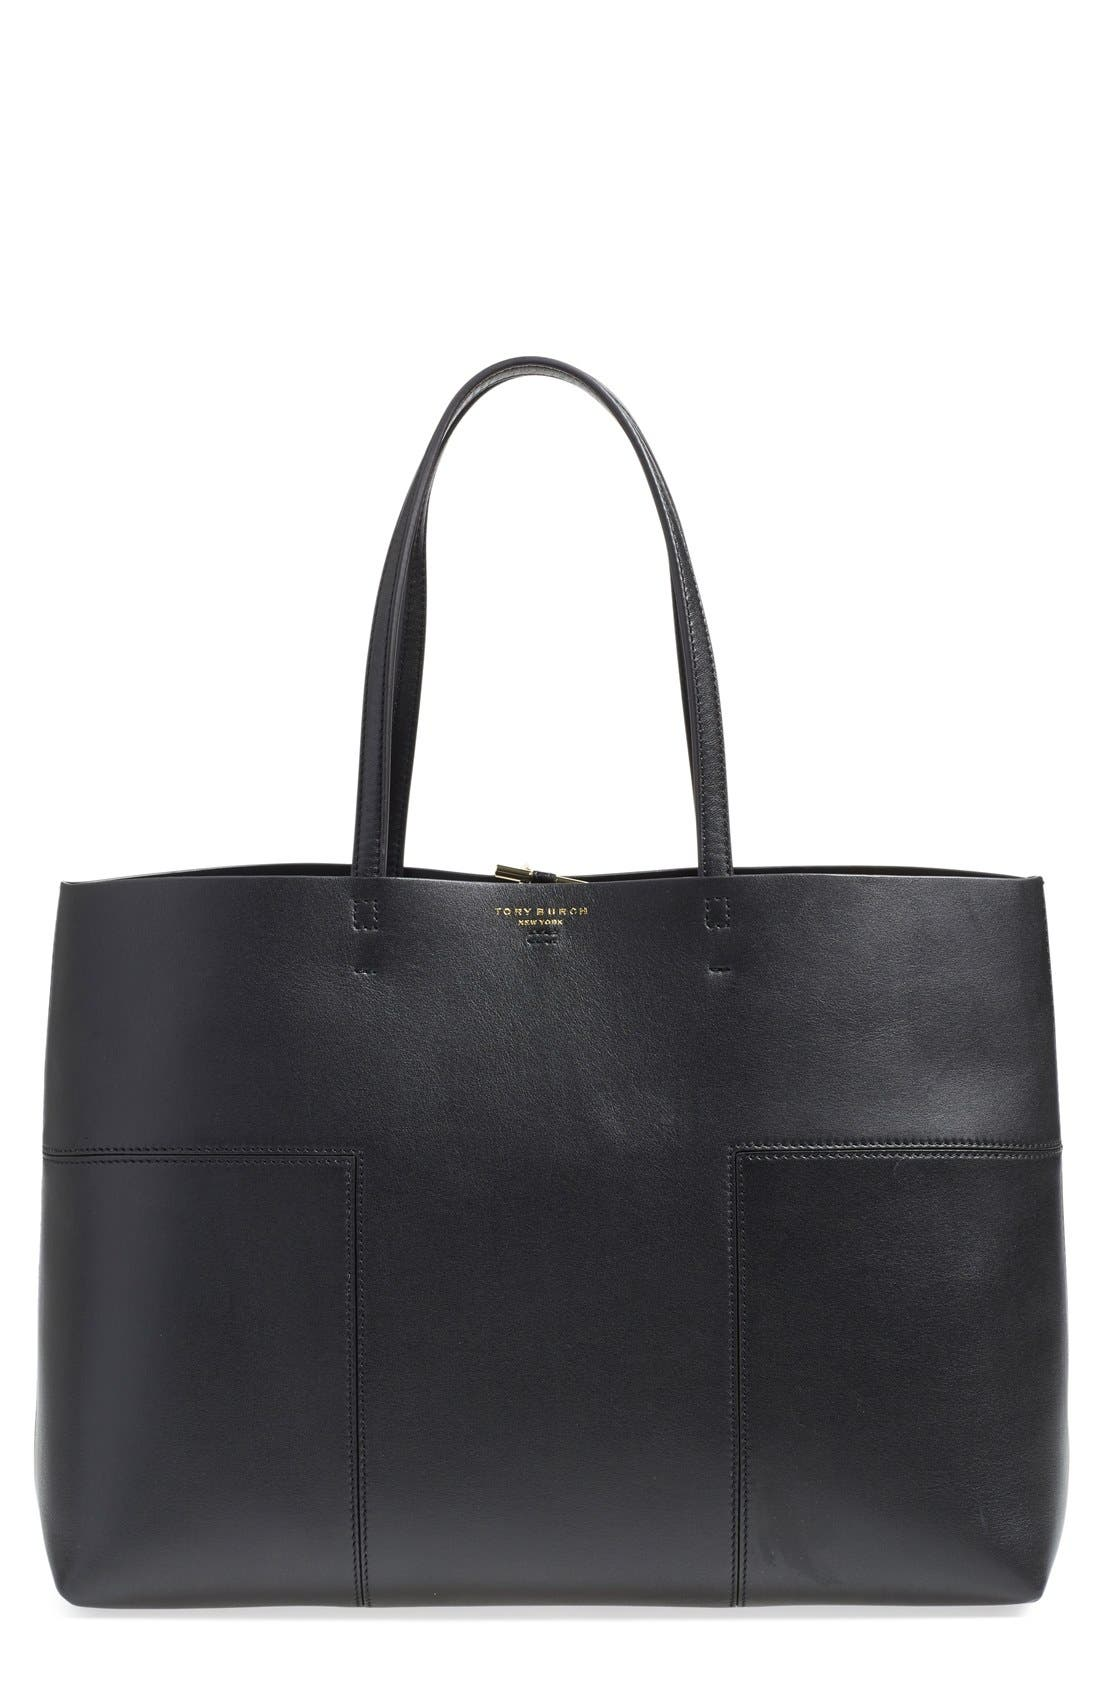 'Block-T' Leather Tote,                             Main thumbnail 1, color,                             001